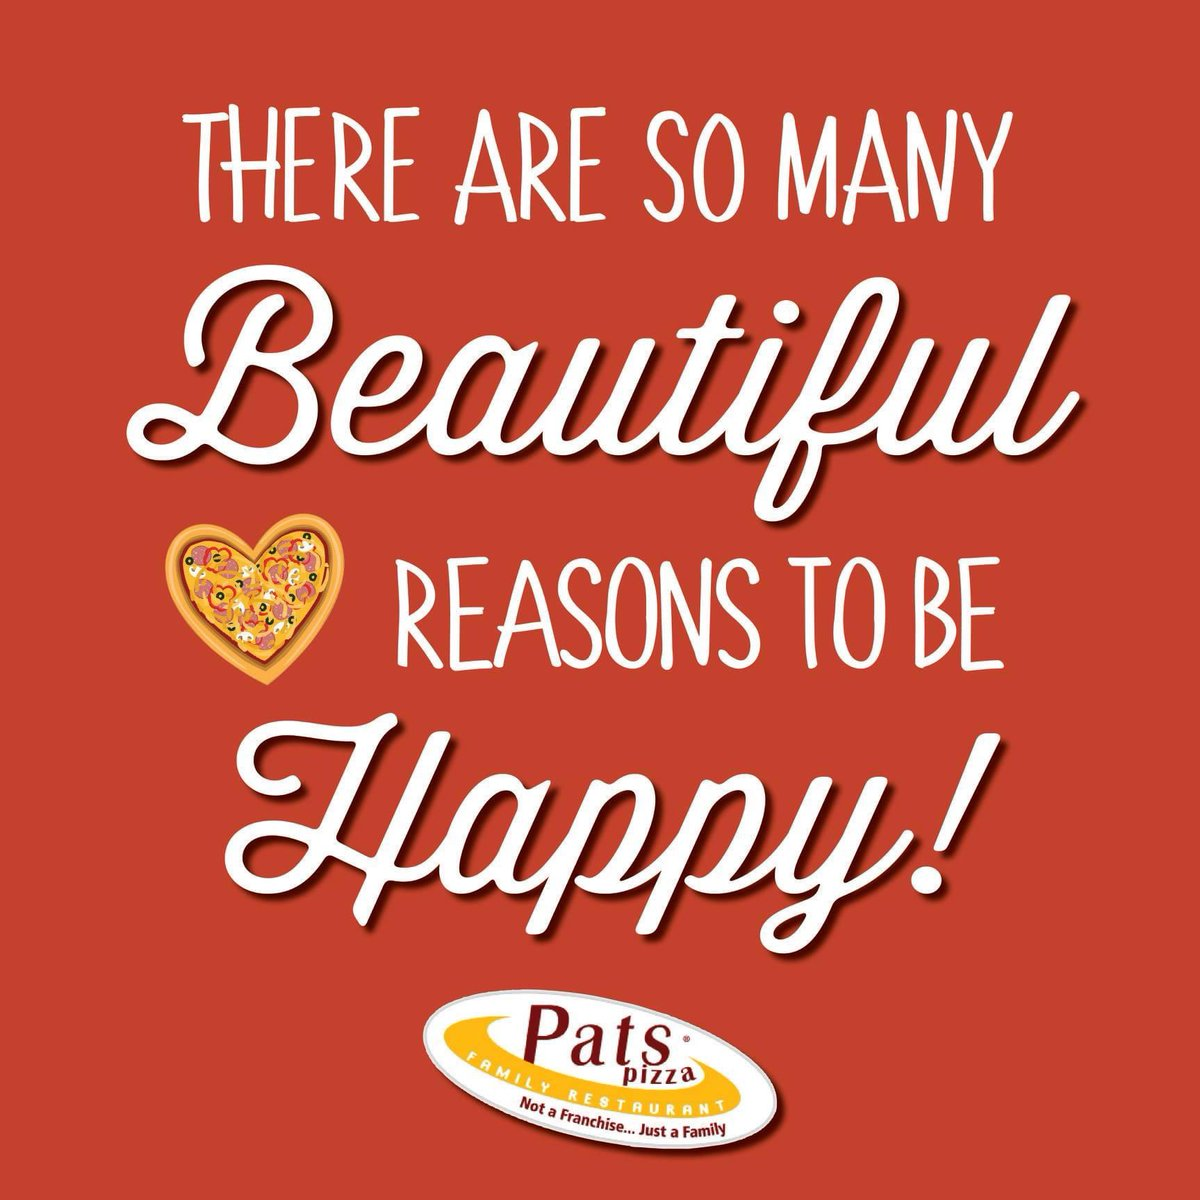 There really are SO many reasons. ☺️ #happysunday  #patspizza #bestpizzaintown #beautifulday #sundayvibes #sundaymood #positivity #quoteoftheday #pizzalover  #love #lovethis #pizza #quote #inspirational #lewesbeach #lewes #lewesde #lewesdelaware #rehobothbeach #rehobothbeachde https://t.co/rJY1HmwPsg